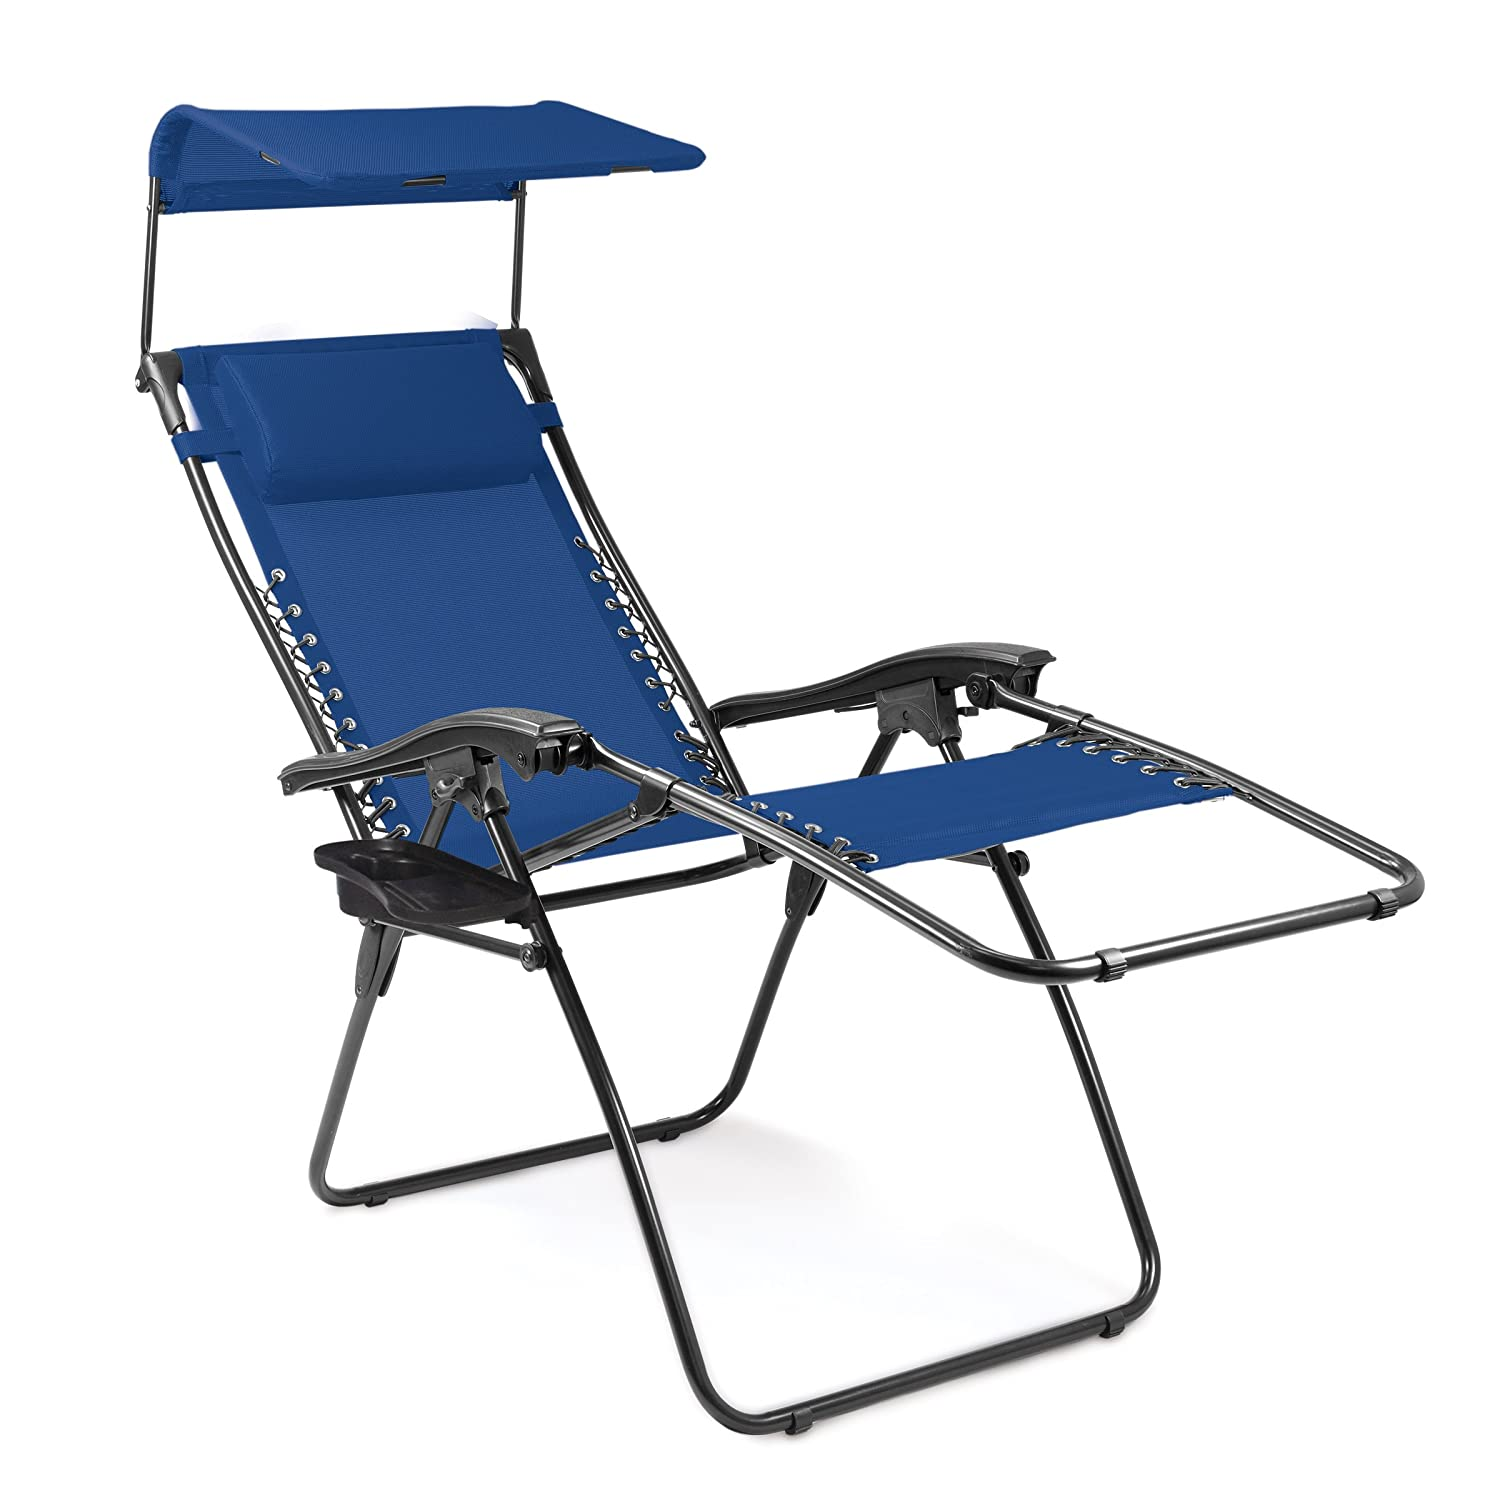 Amazon.com : Picnic Time Portable Serenity Reclining Lounge Chair, Navy :  Camping Chairs : Sports U0026 Outdoors